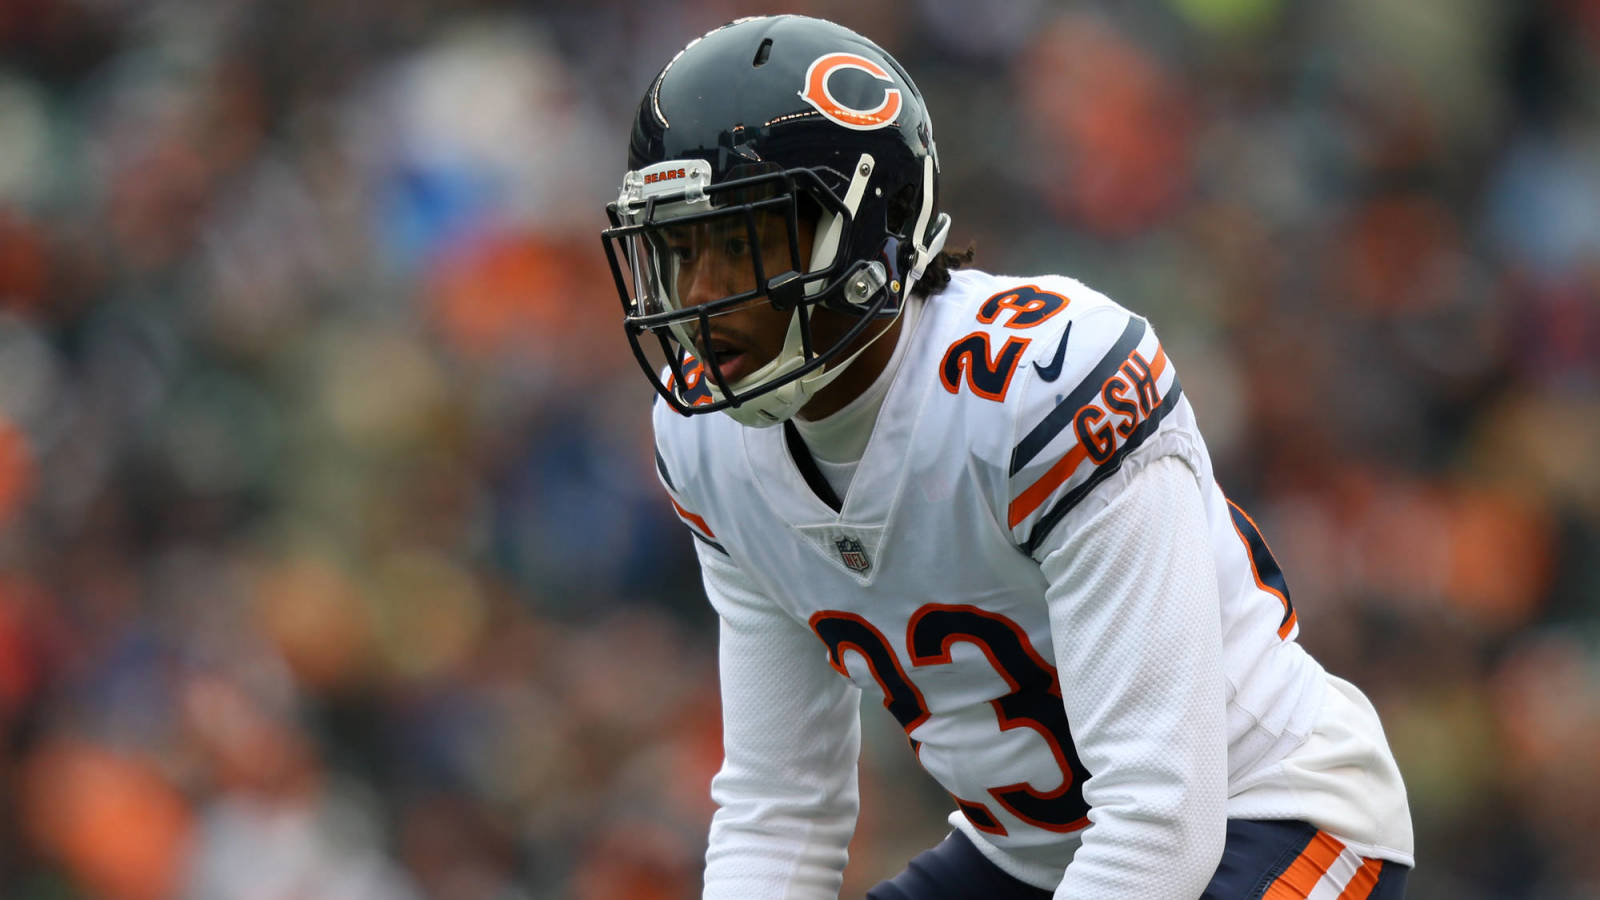 Bears apply the transition tag to cornerback Kyle Fuller